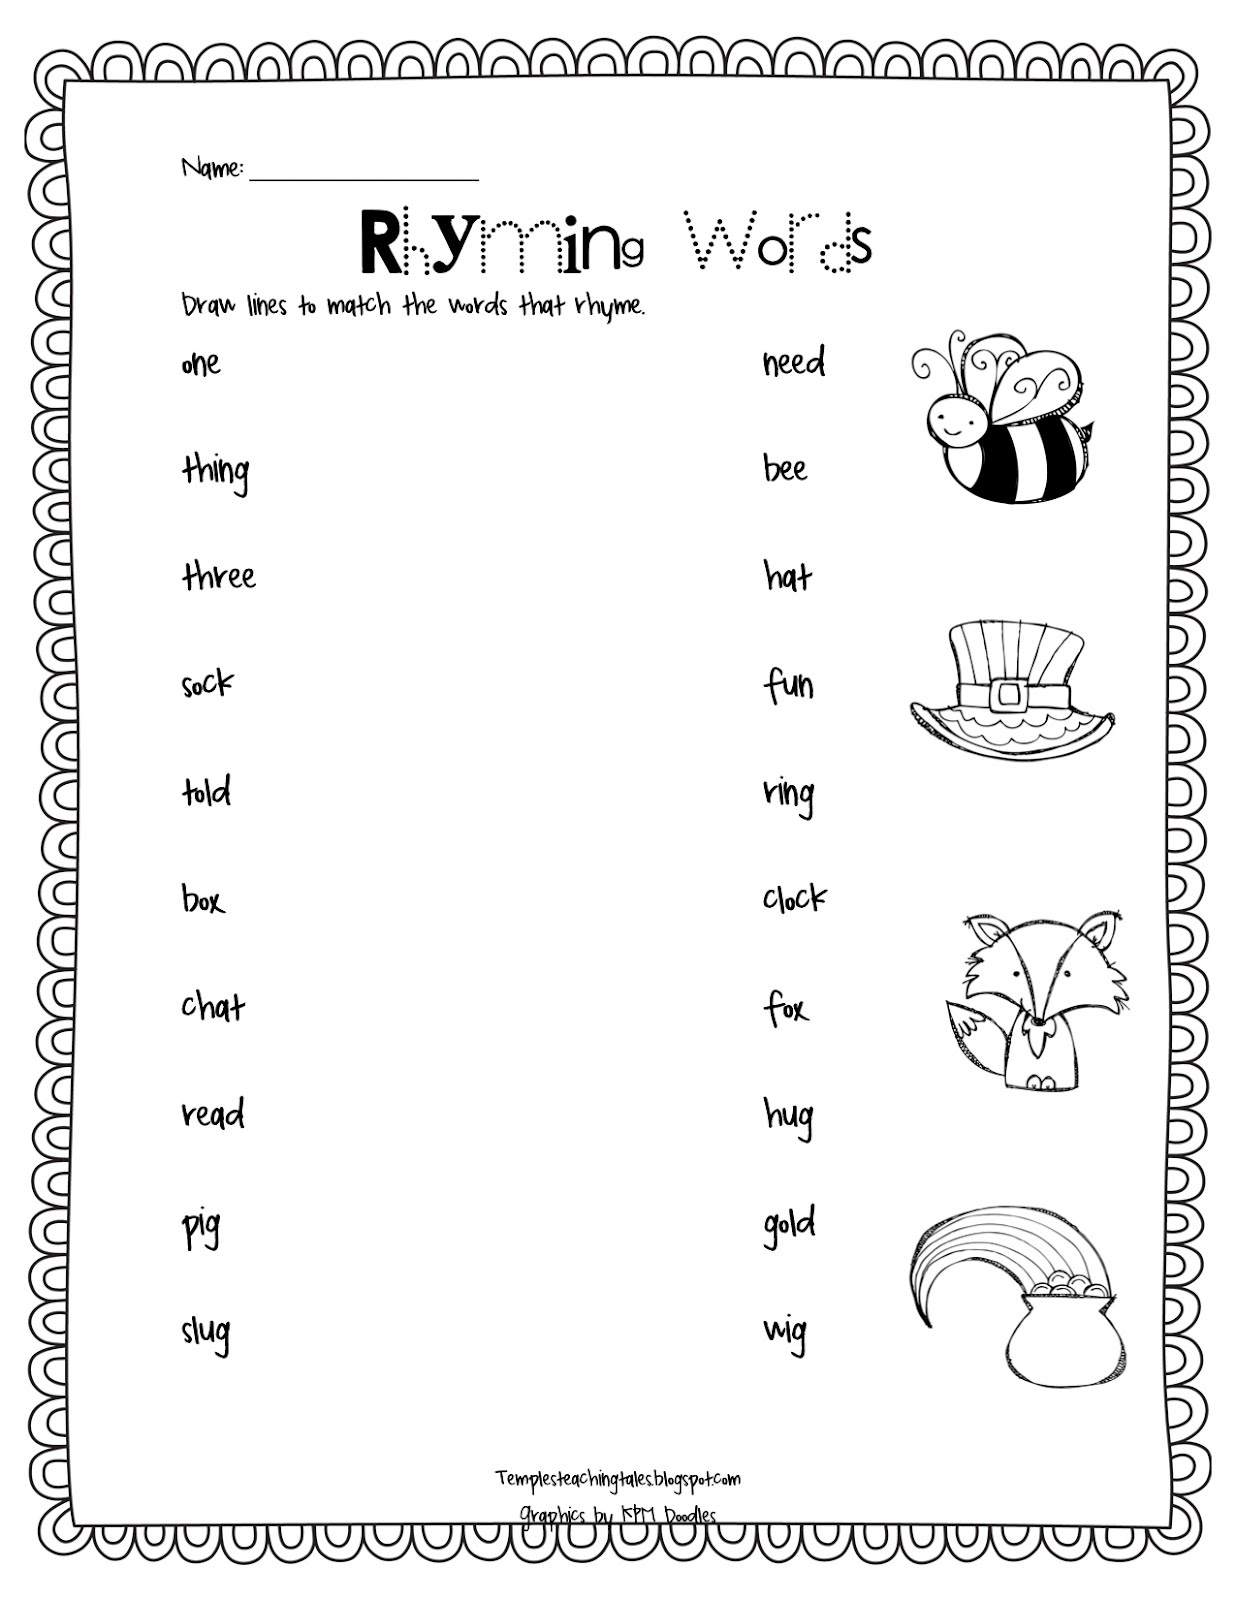 Printables Free Printable Rhyming Worksheets printables first grade rhyming worksheets sharpmindprojects worksheet rhymes noconformity free words for kindergarten photo album